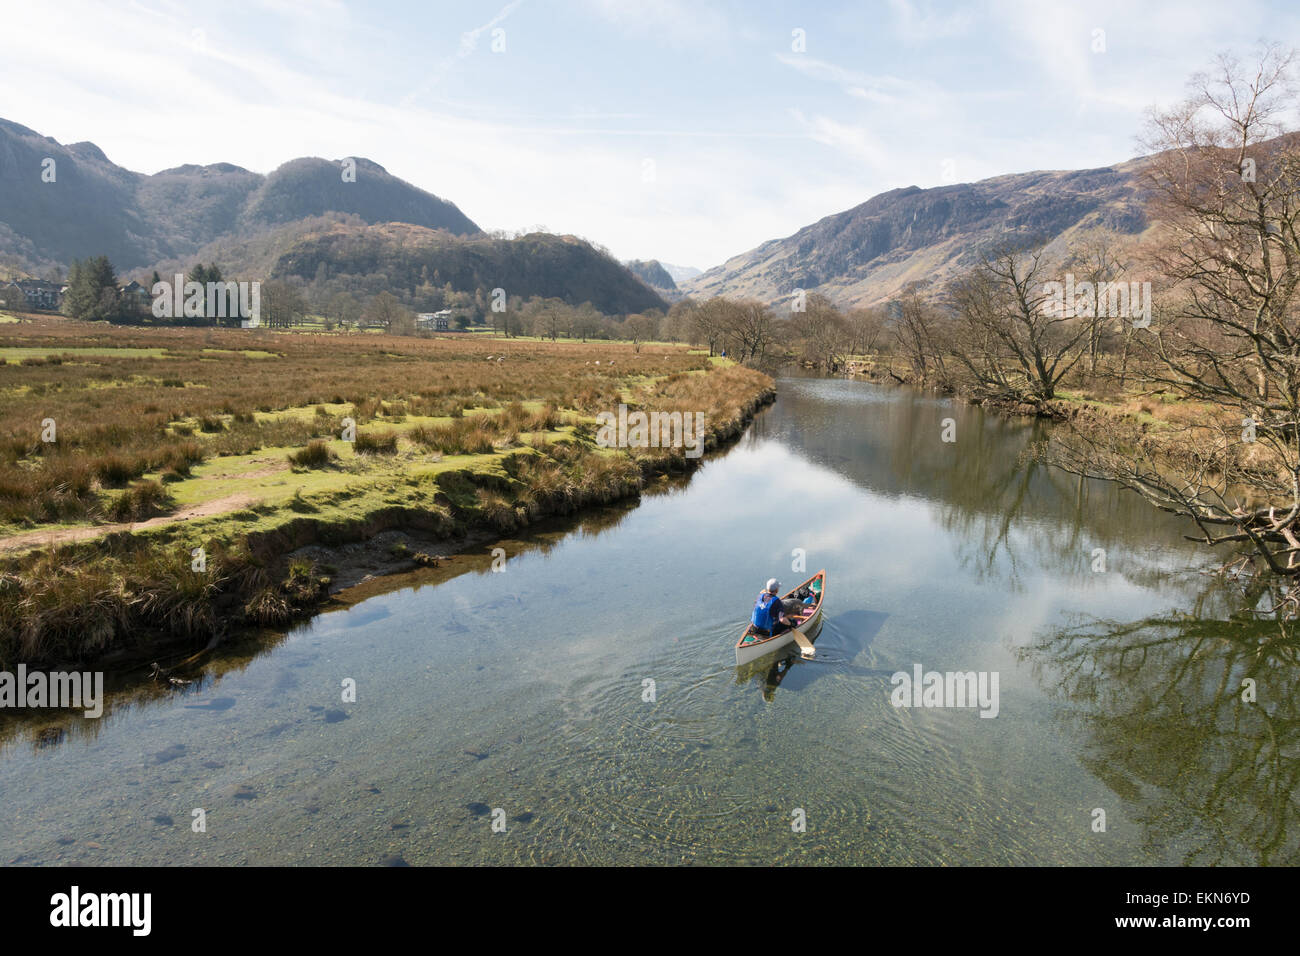 Man and dog viewed from the Chinese Bridge paddling canoe on River Derwent in Borrowdale, Lake District, England, - Stock Image